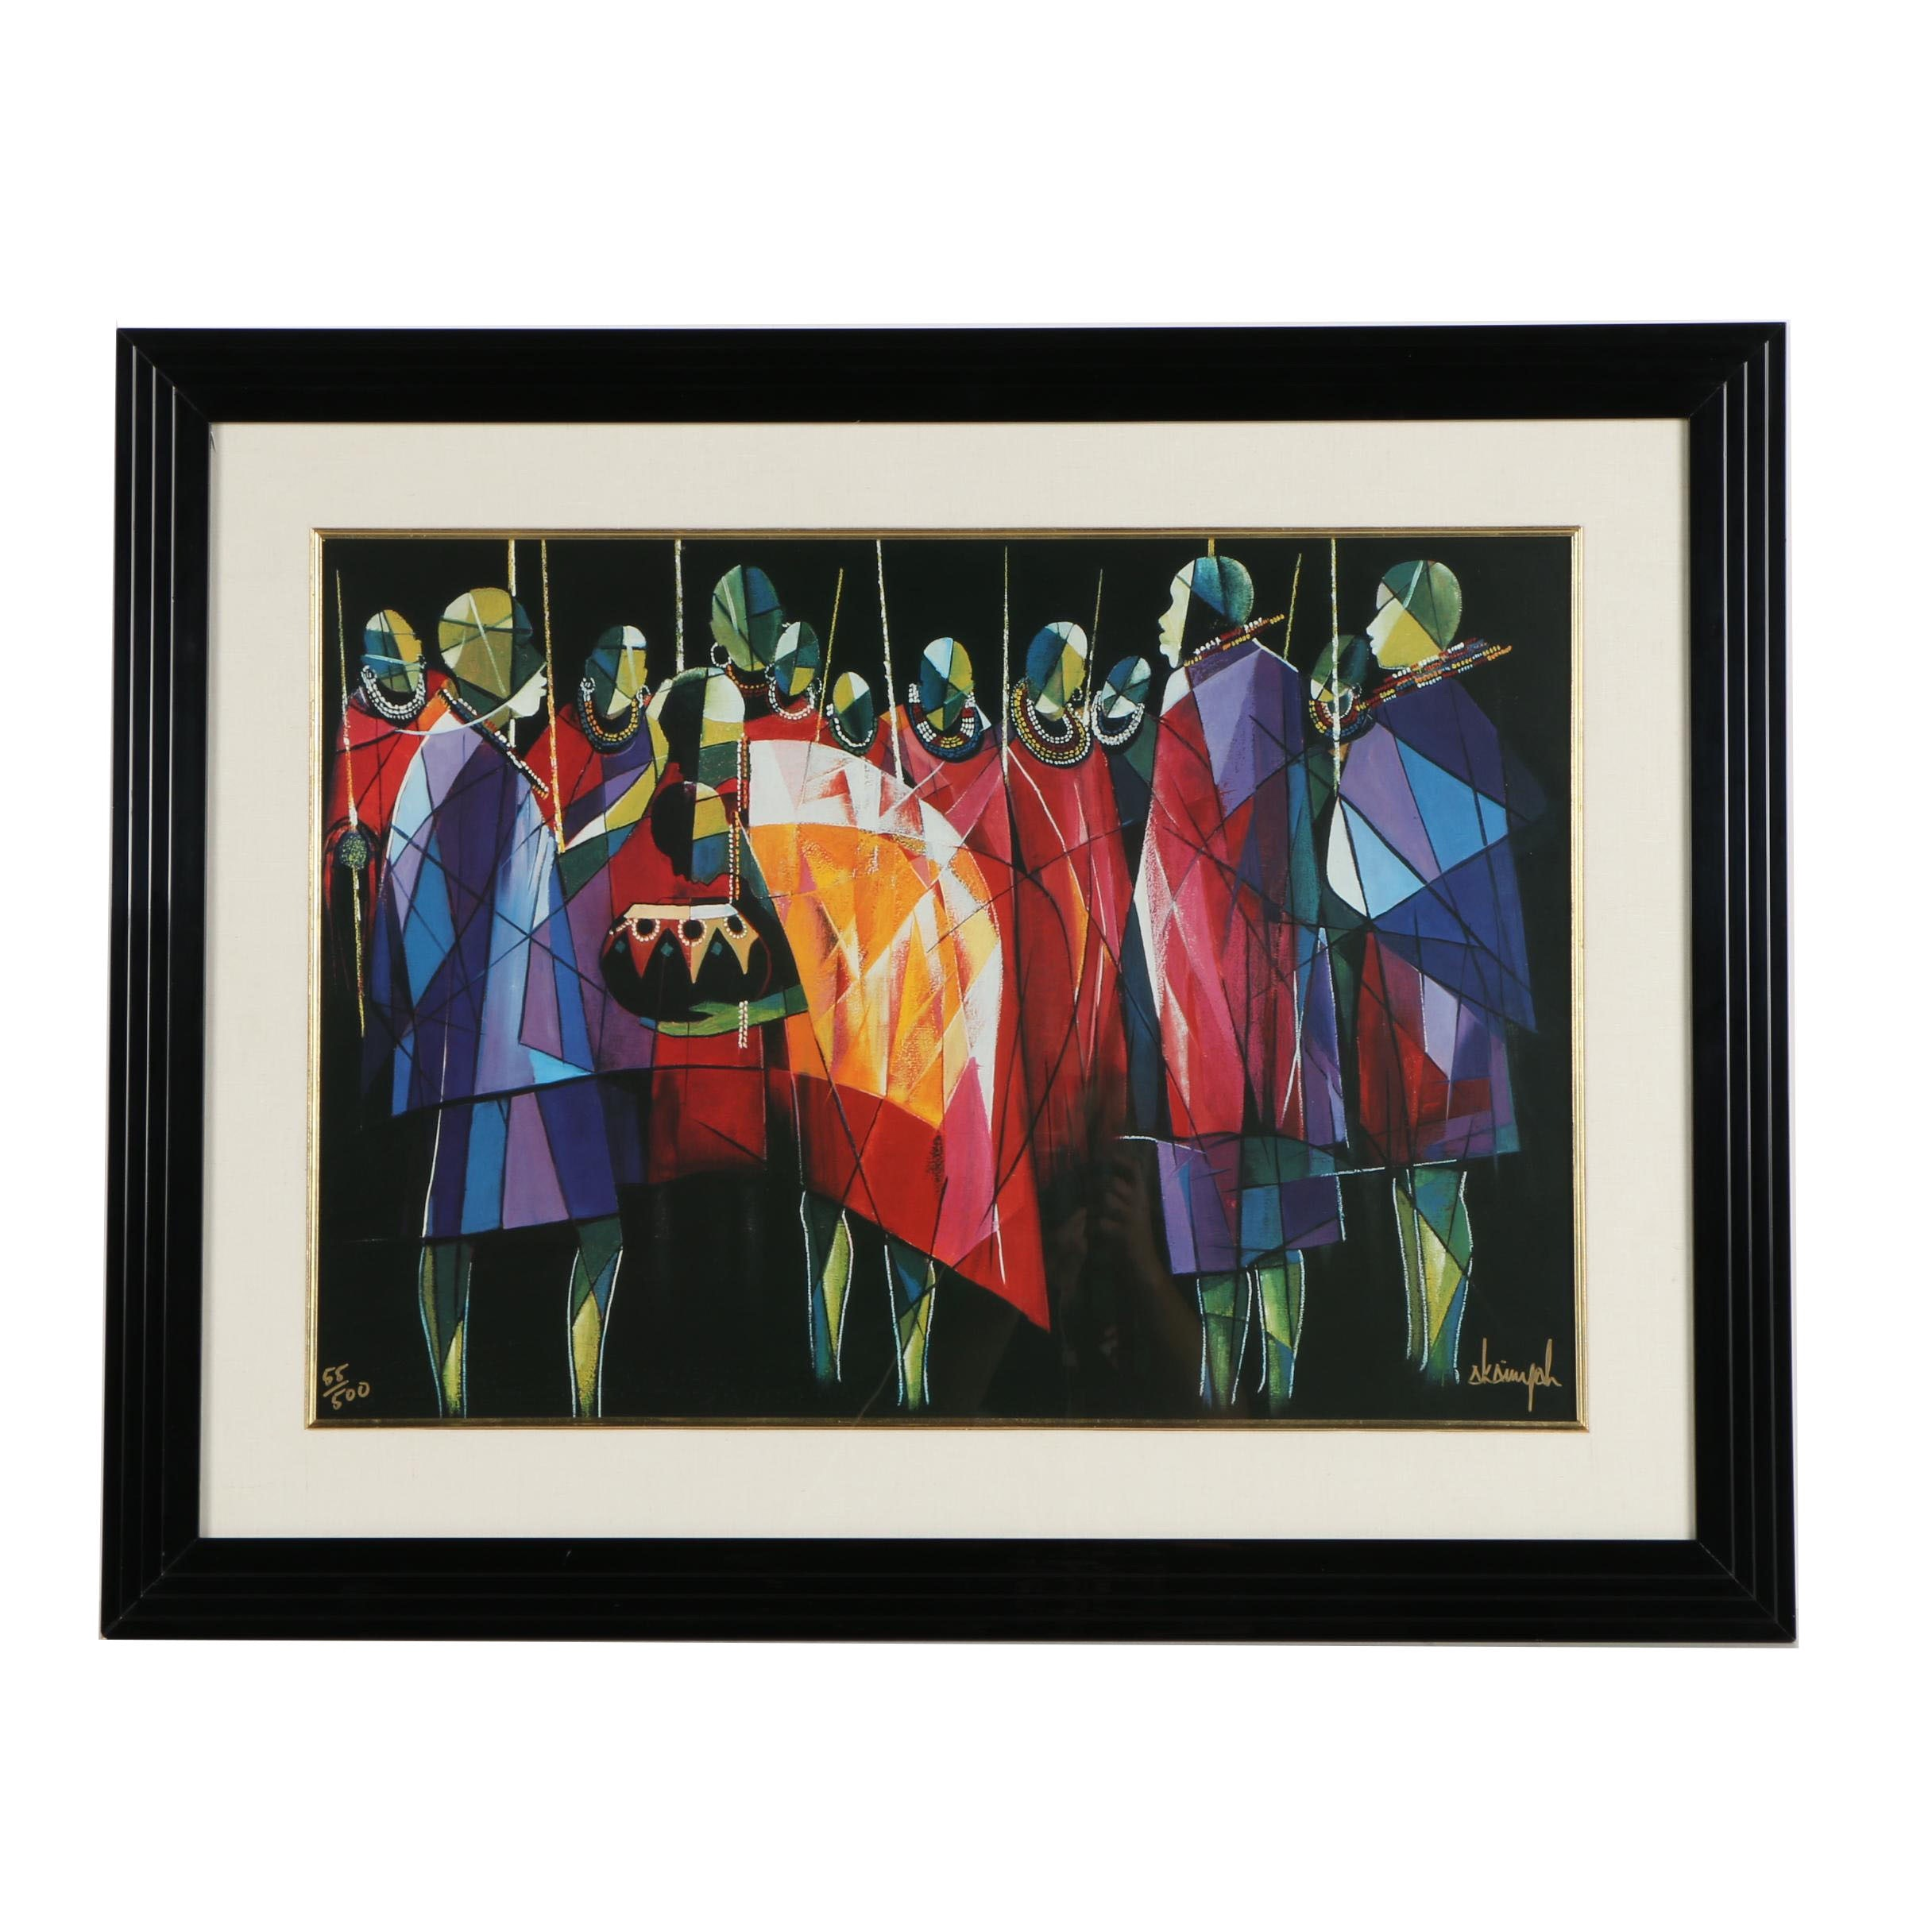 Samuel Akainyah Limited Edition Offset Lithograph of Figures in Maasai Attire